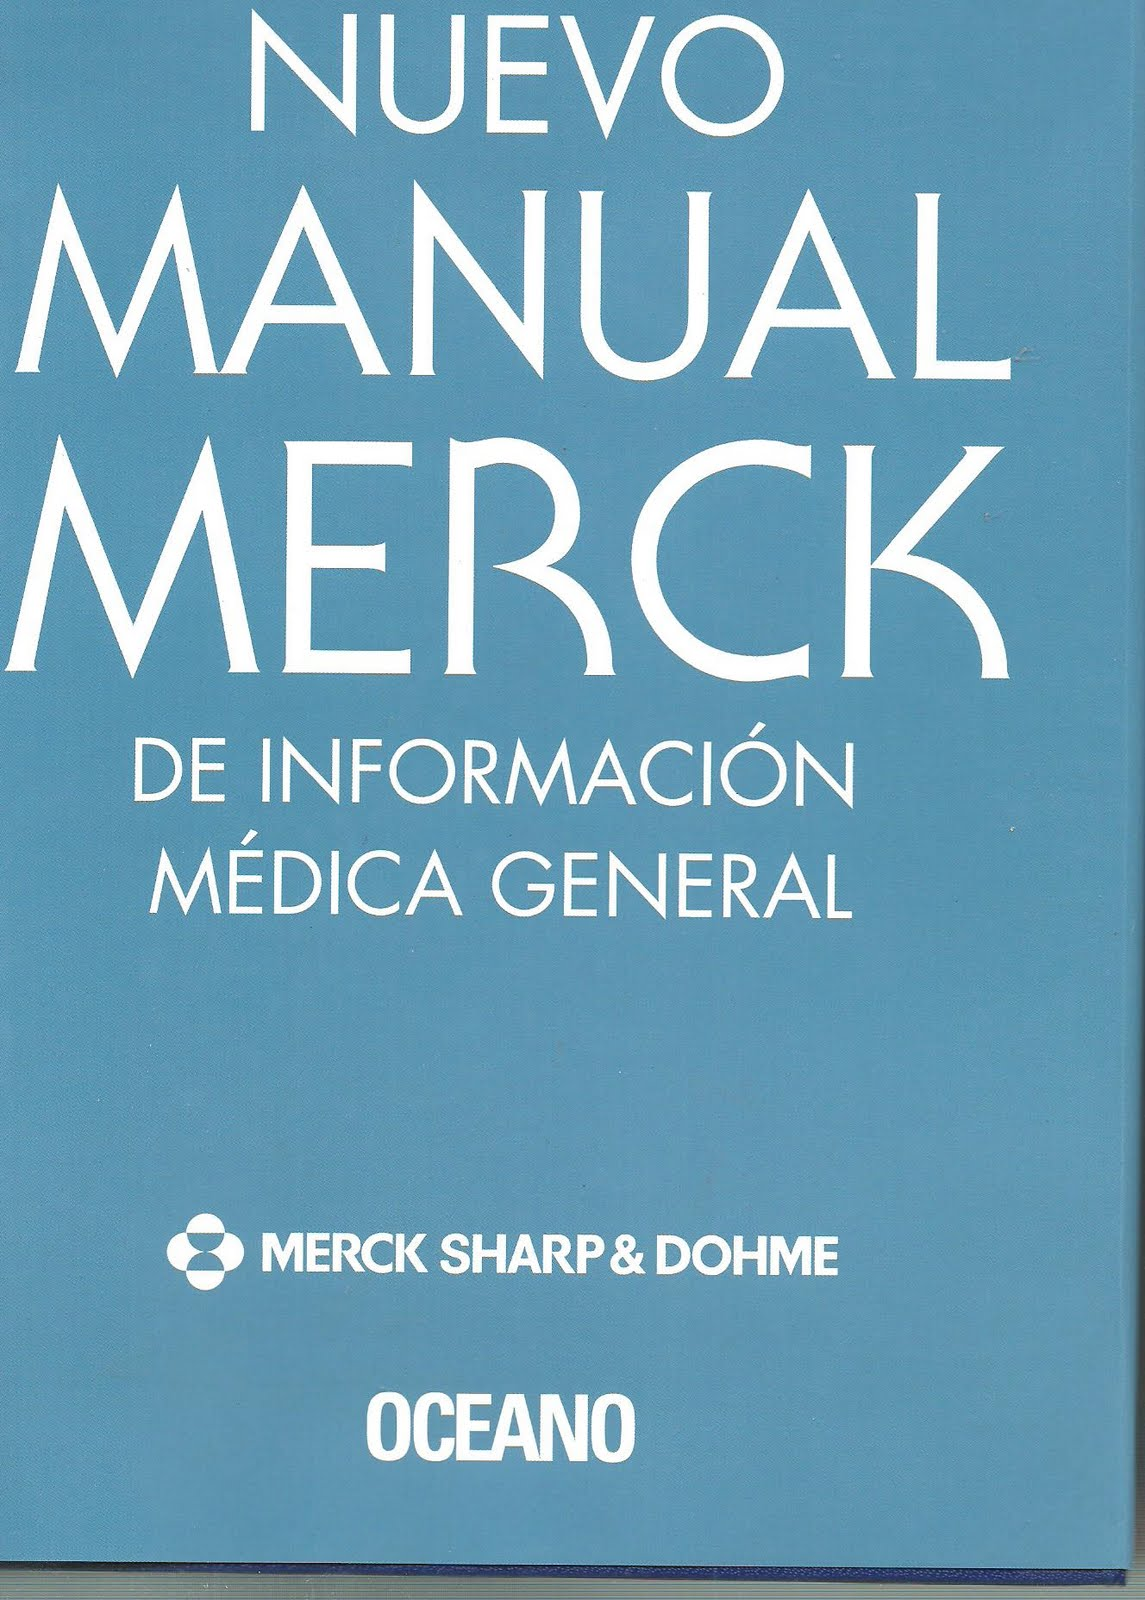 manual merck descargar gratis